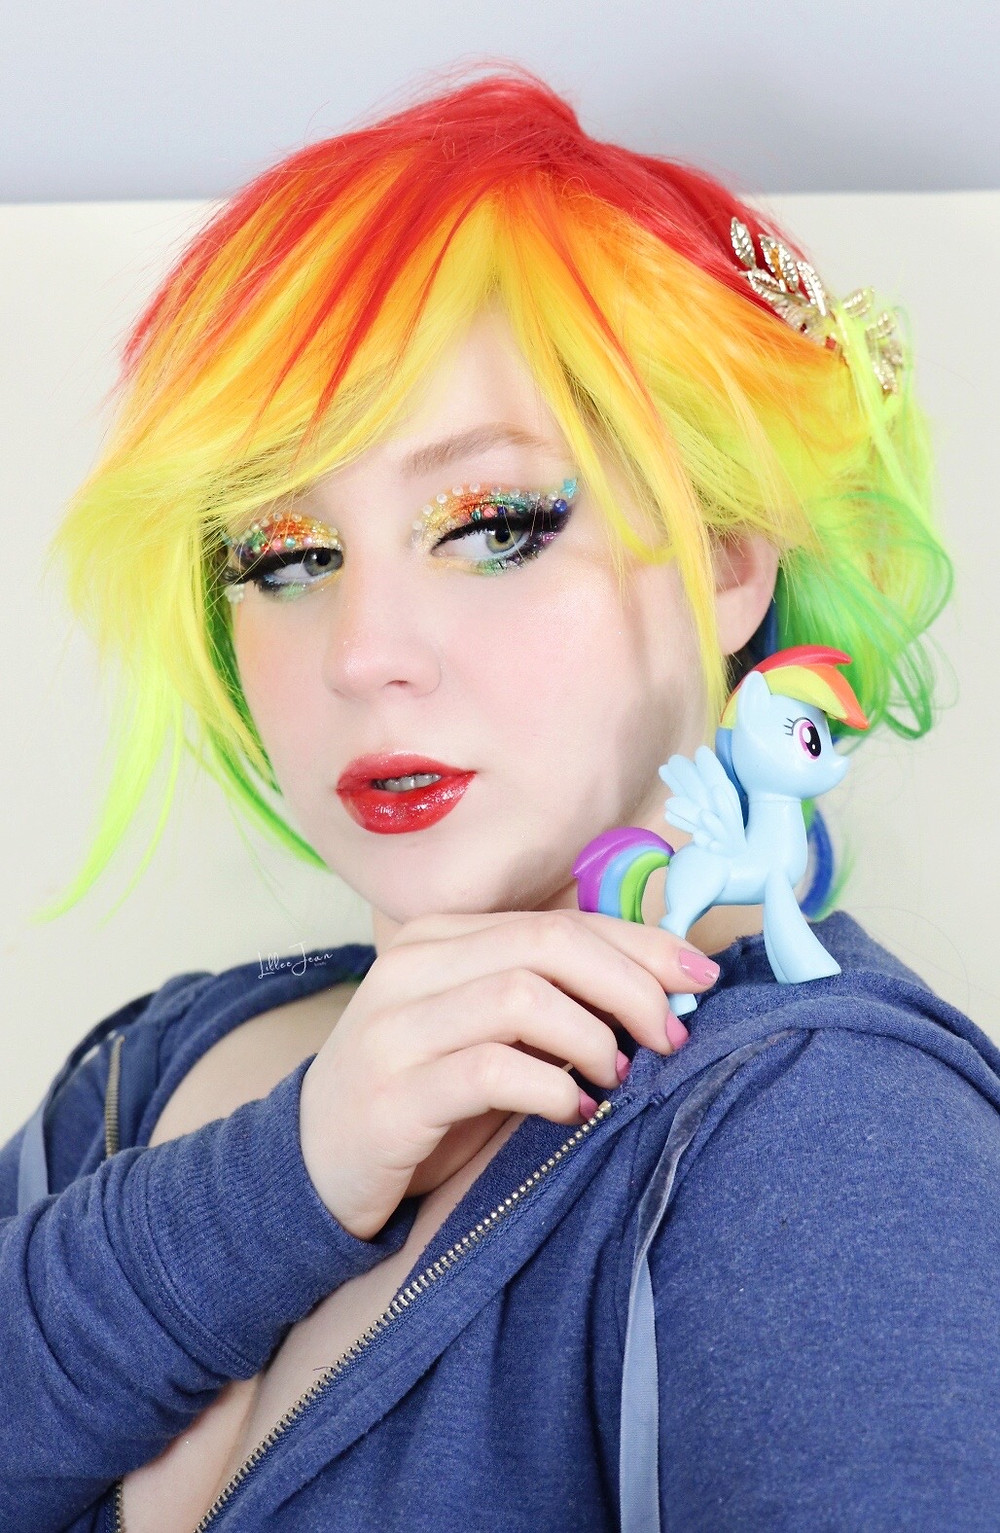 Rainbow Dash My Little Pony Rhinestone Glittery Spring Makeup Tutorial 2021 | Lillee Jean